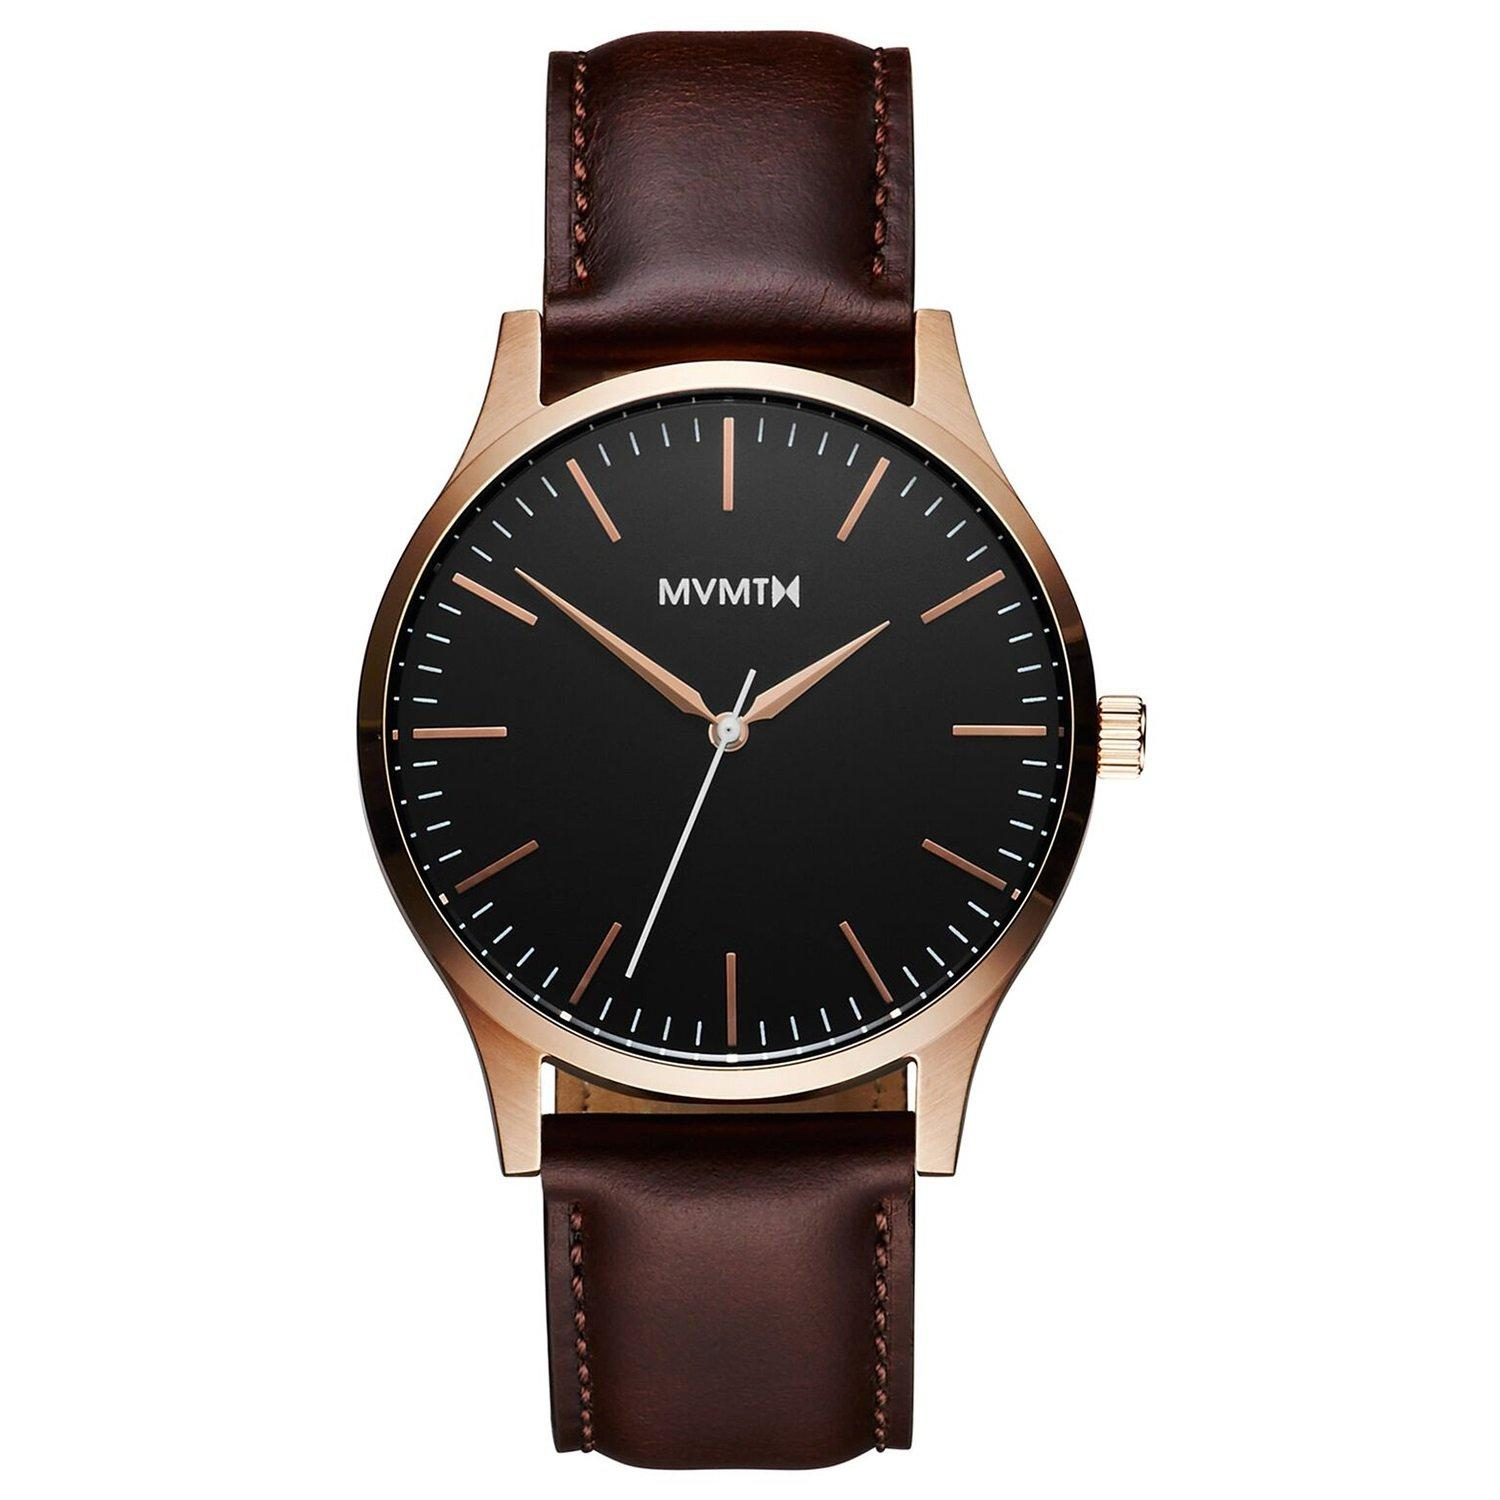 MVMT 40 Series Rose Gold Plated Men's Watch